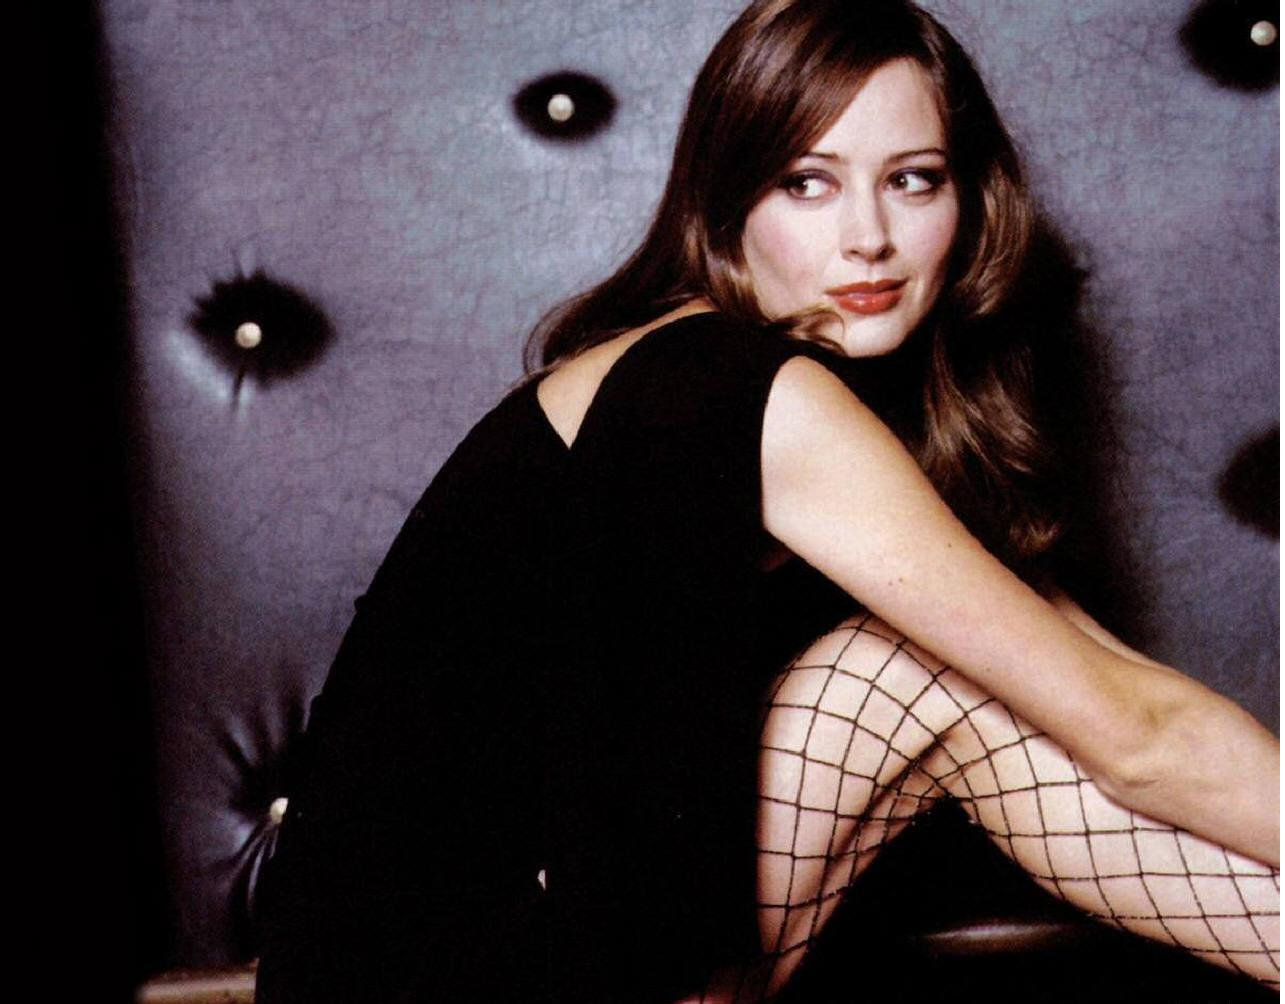 STAR FREE DOWNLOAD HD WALLPAPERS: Amy Acker Hd Wallpapers